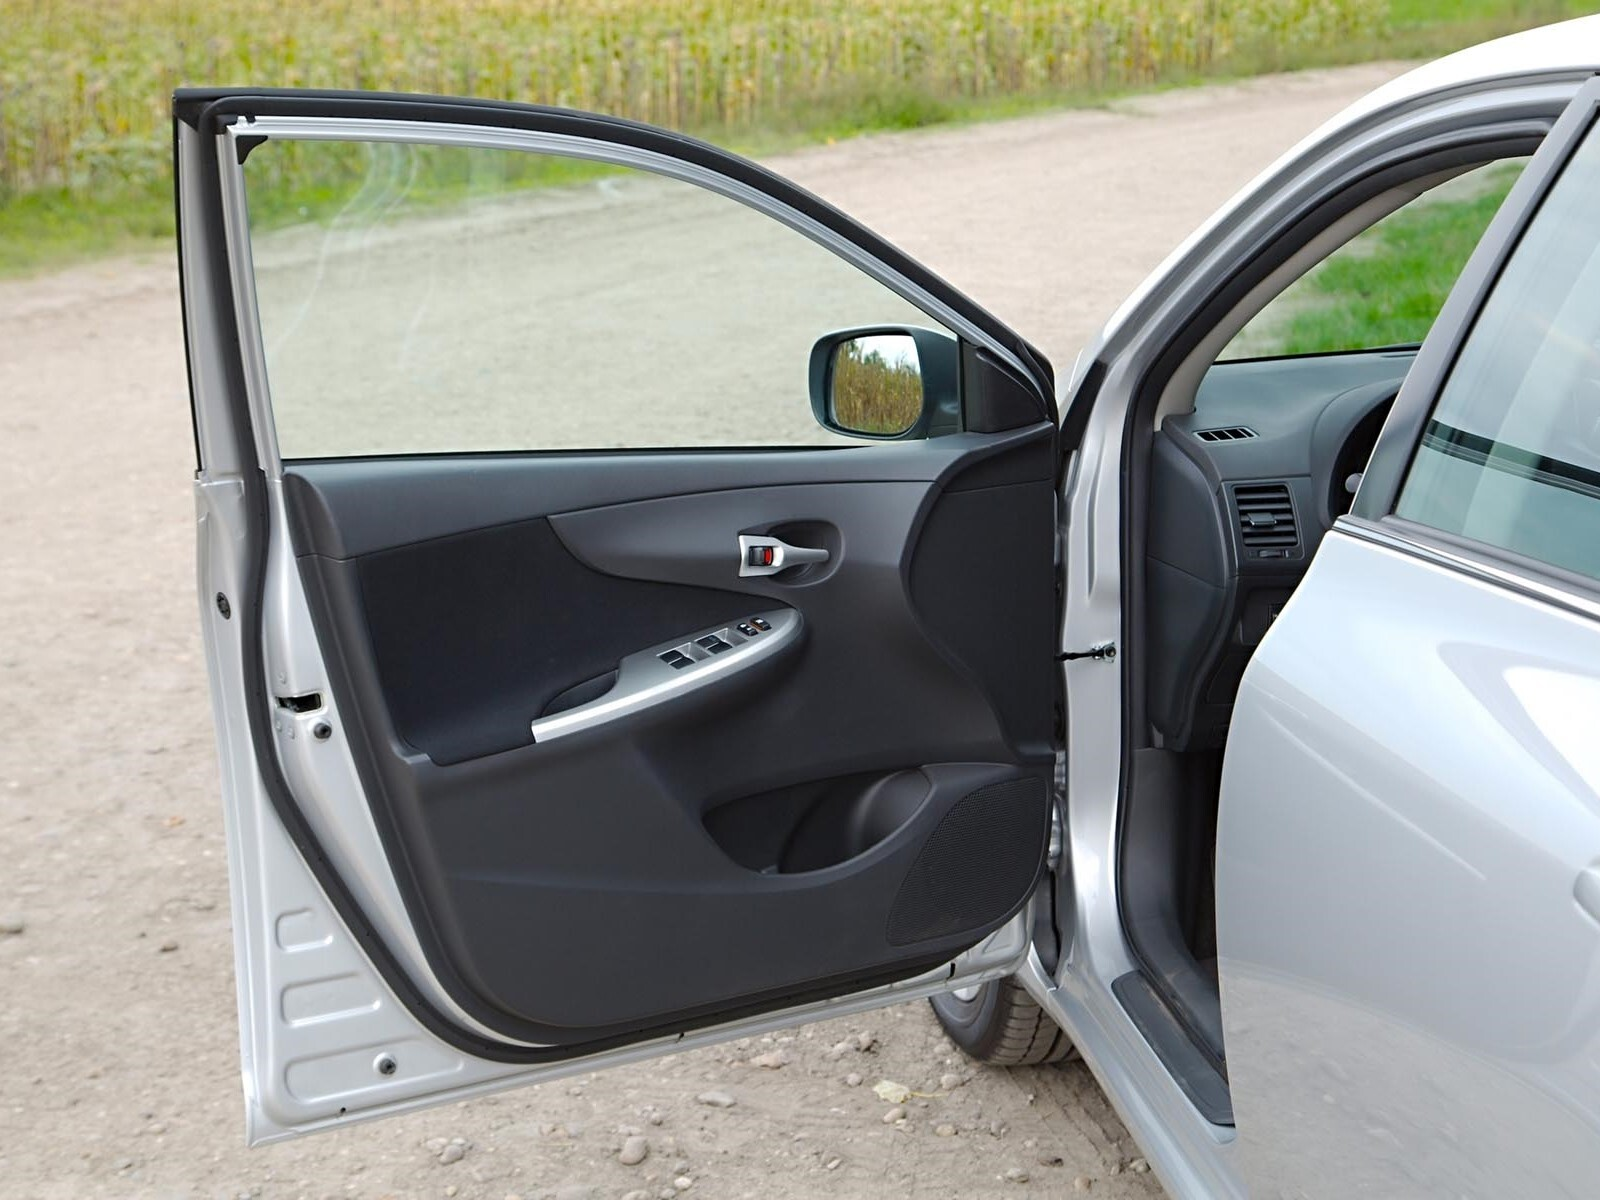 Car_Door_shutterstock_435960430.jpg